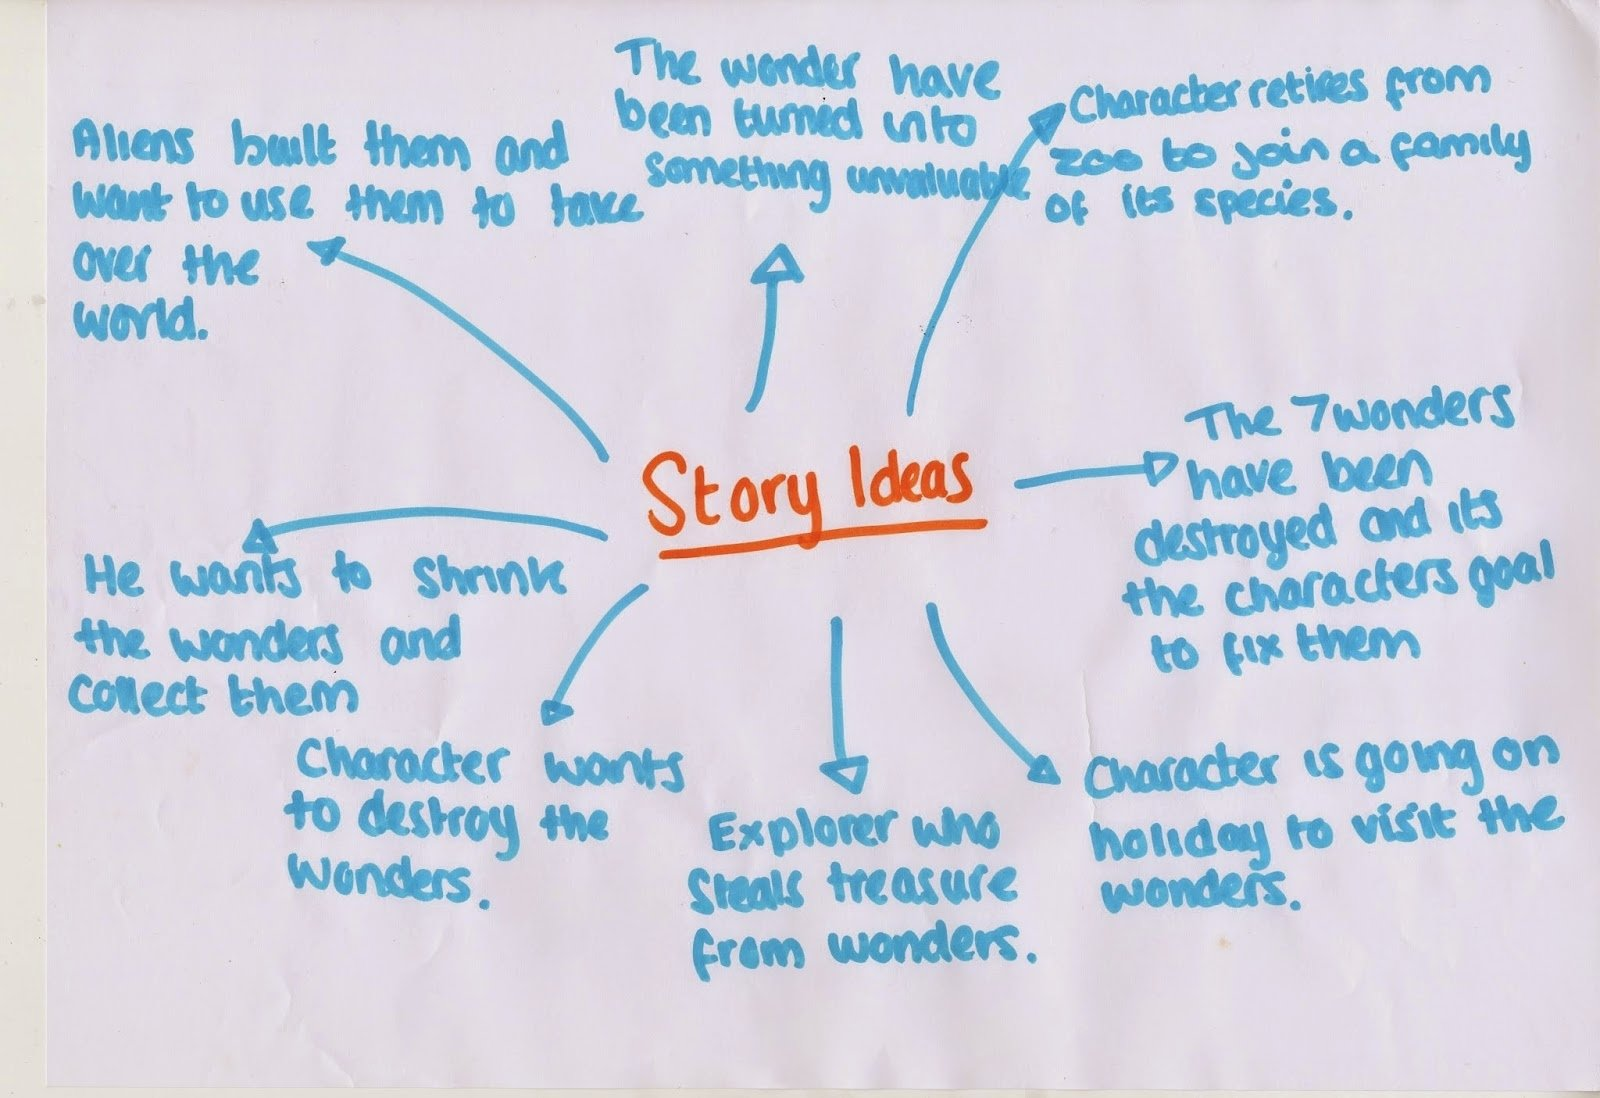 10 Stunning Coming Up With Story Ideas dinosaurs vs unicorns extended practice story ideas development 2021